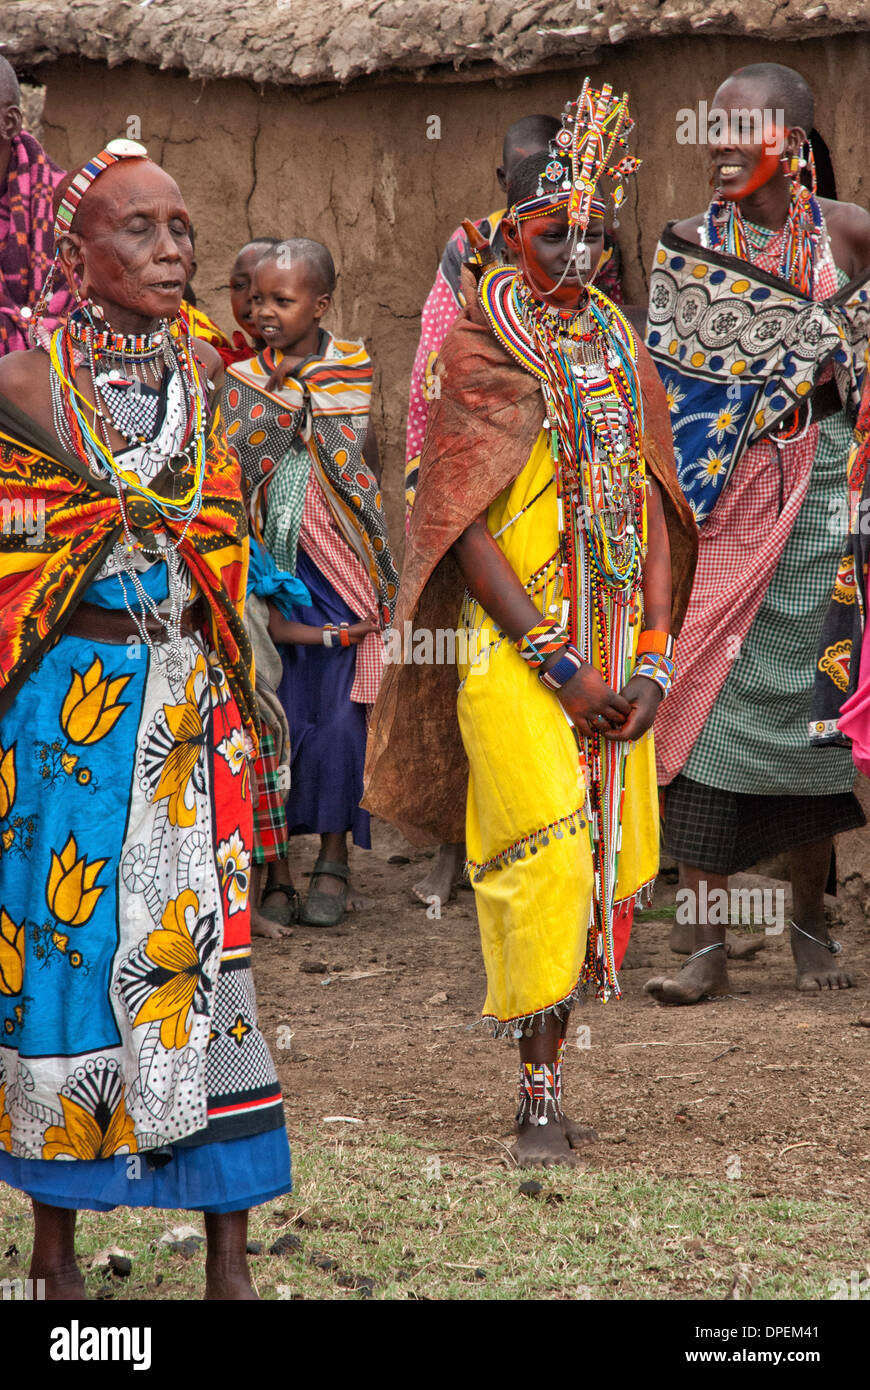 Bride attired in wedding dress, jewelry and facial color for an enactment of a Masai wedding in a Village, Masai Stock Photo